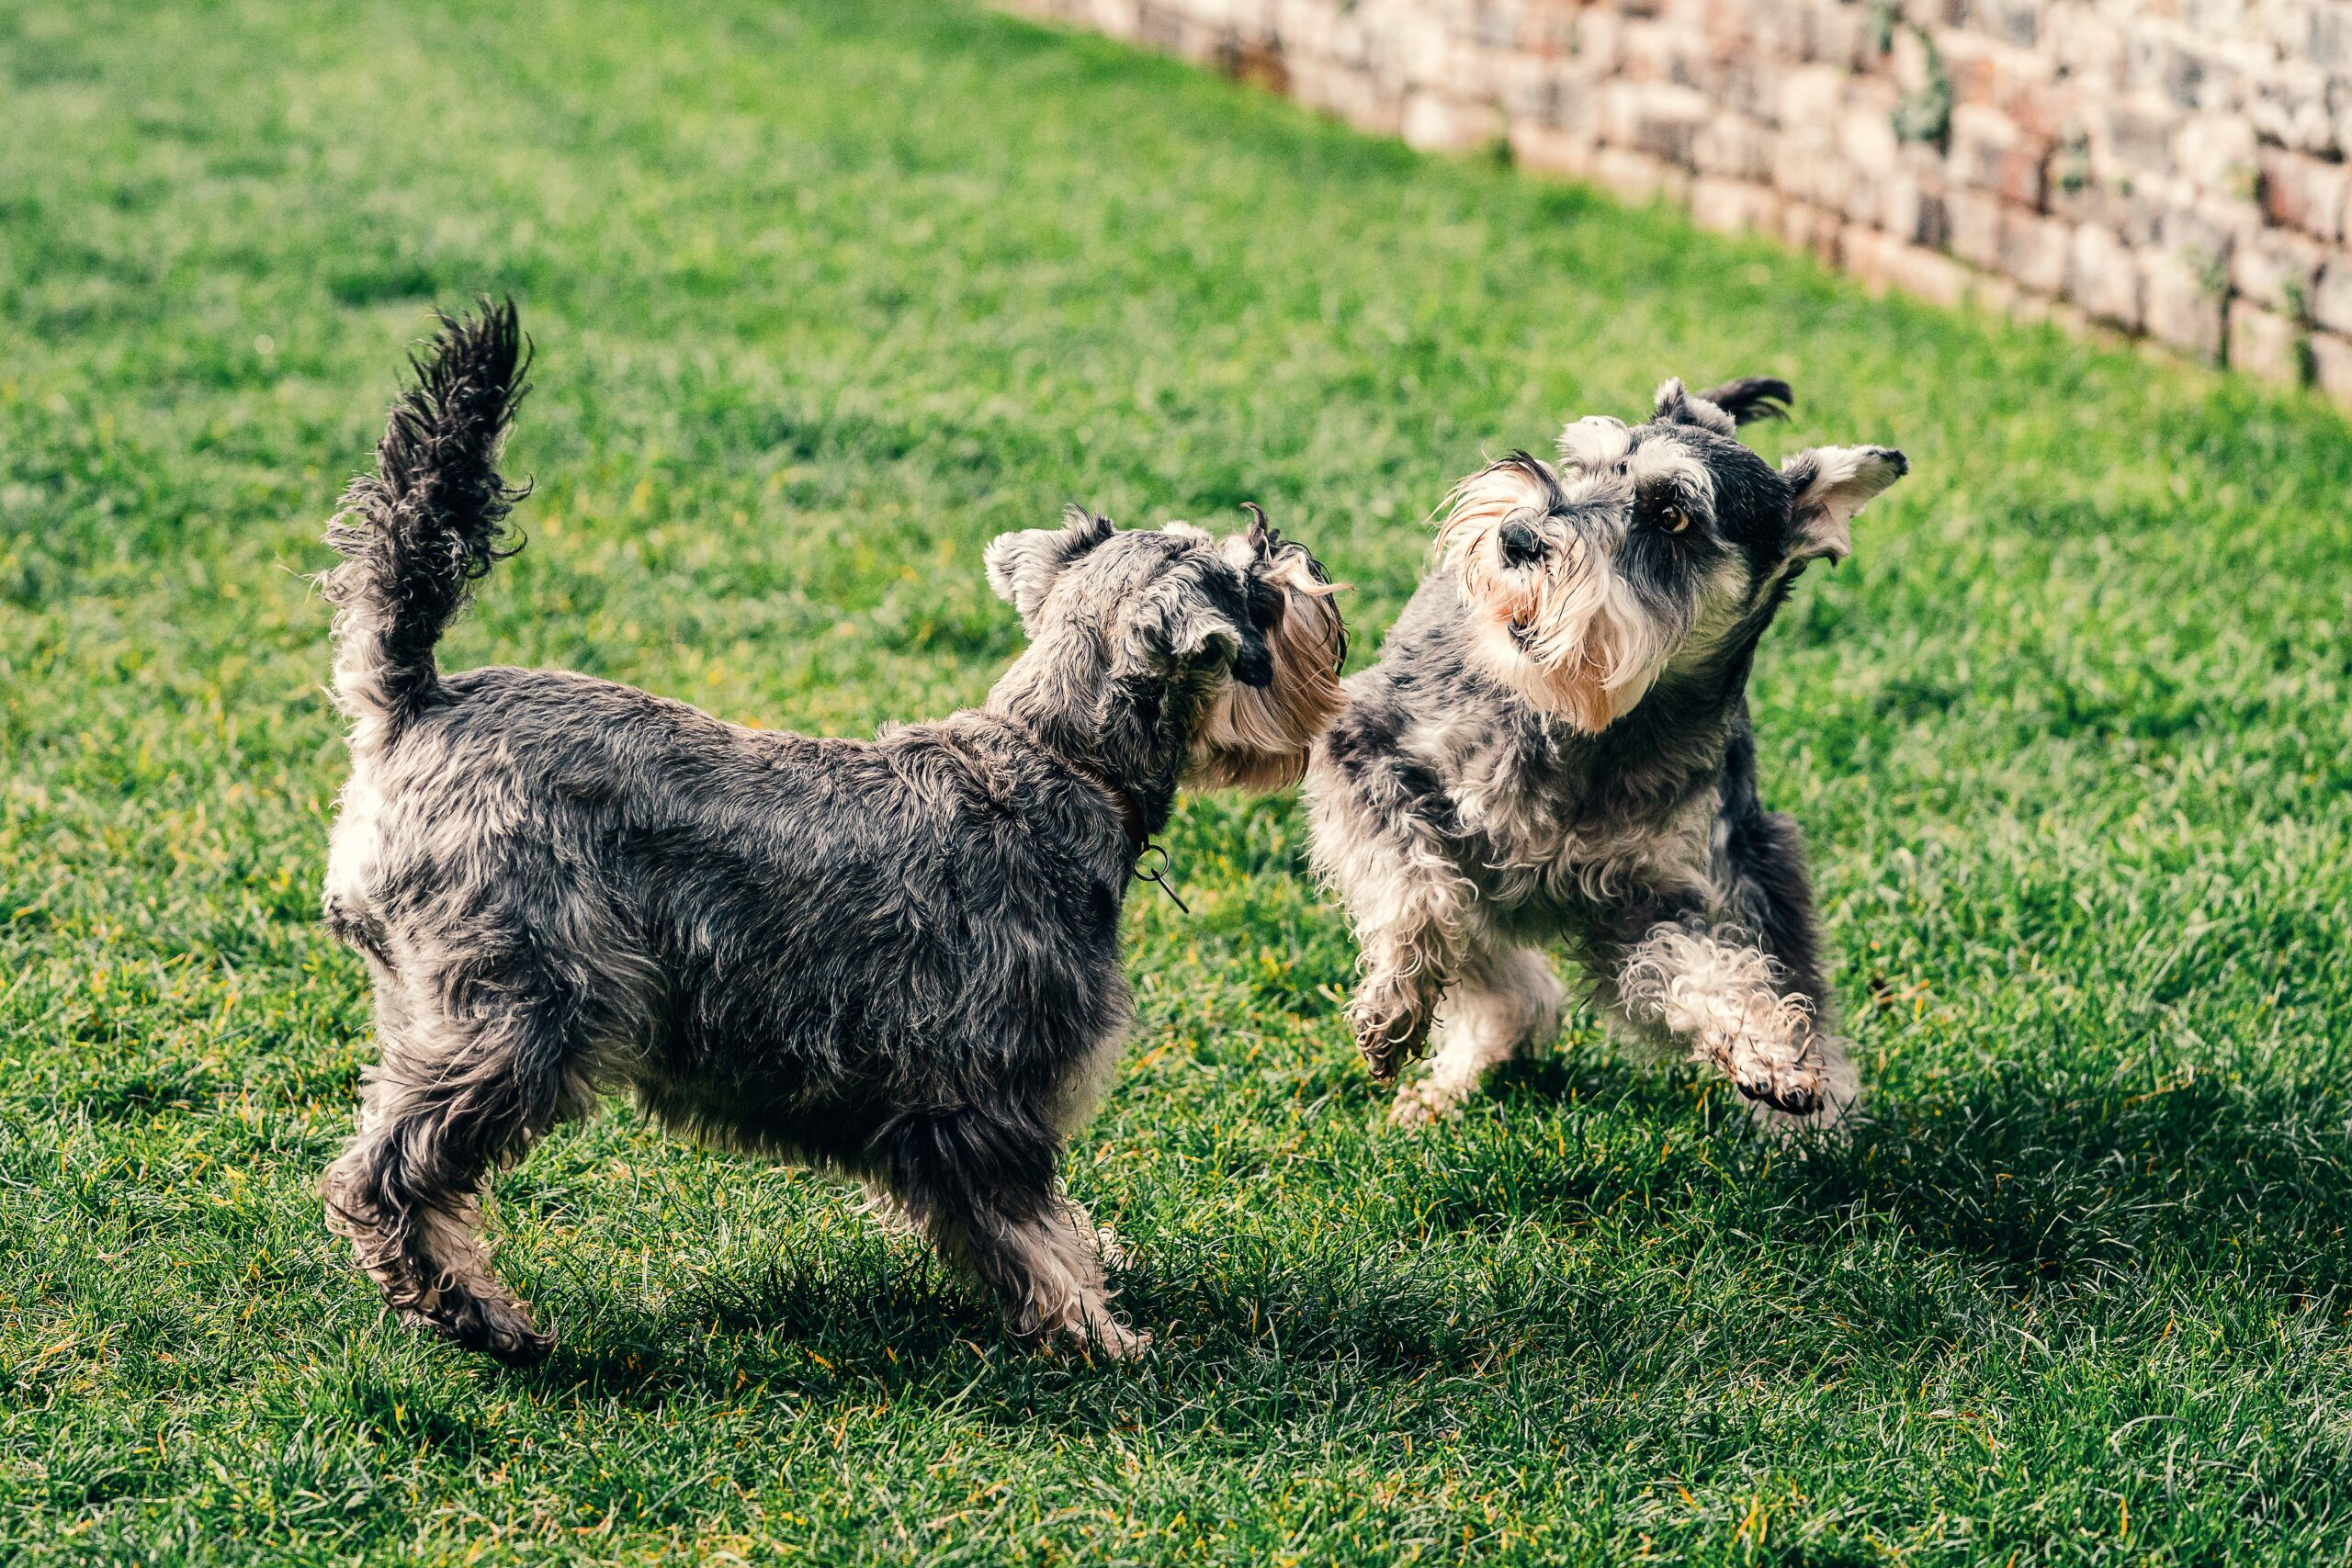 two dogs playing at park together